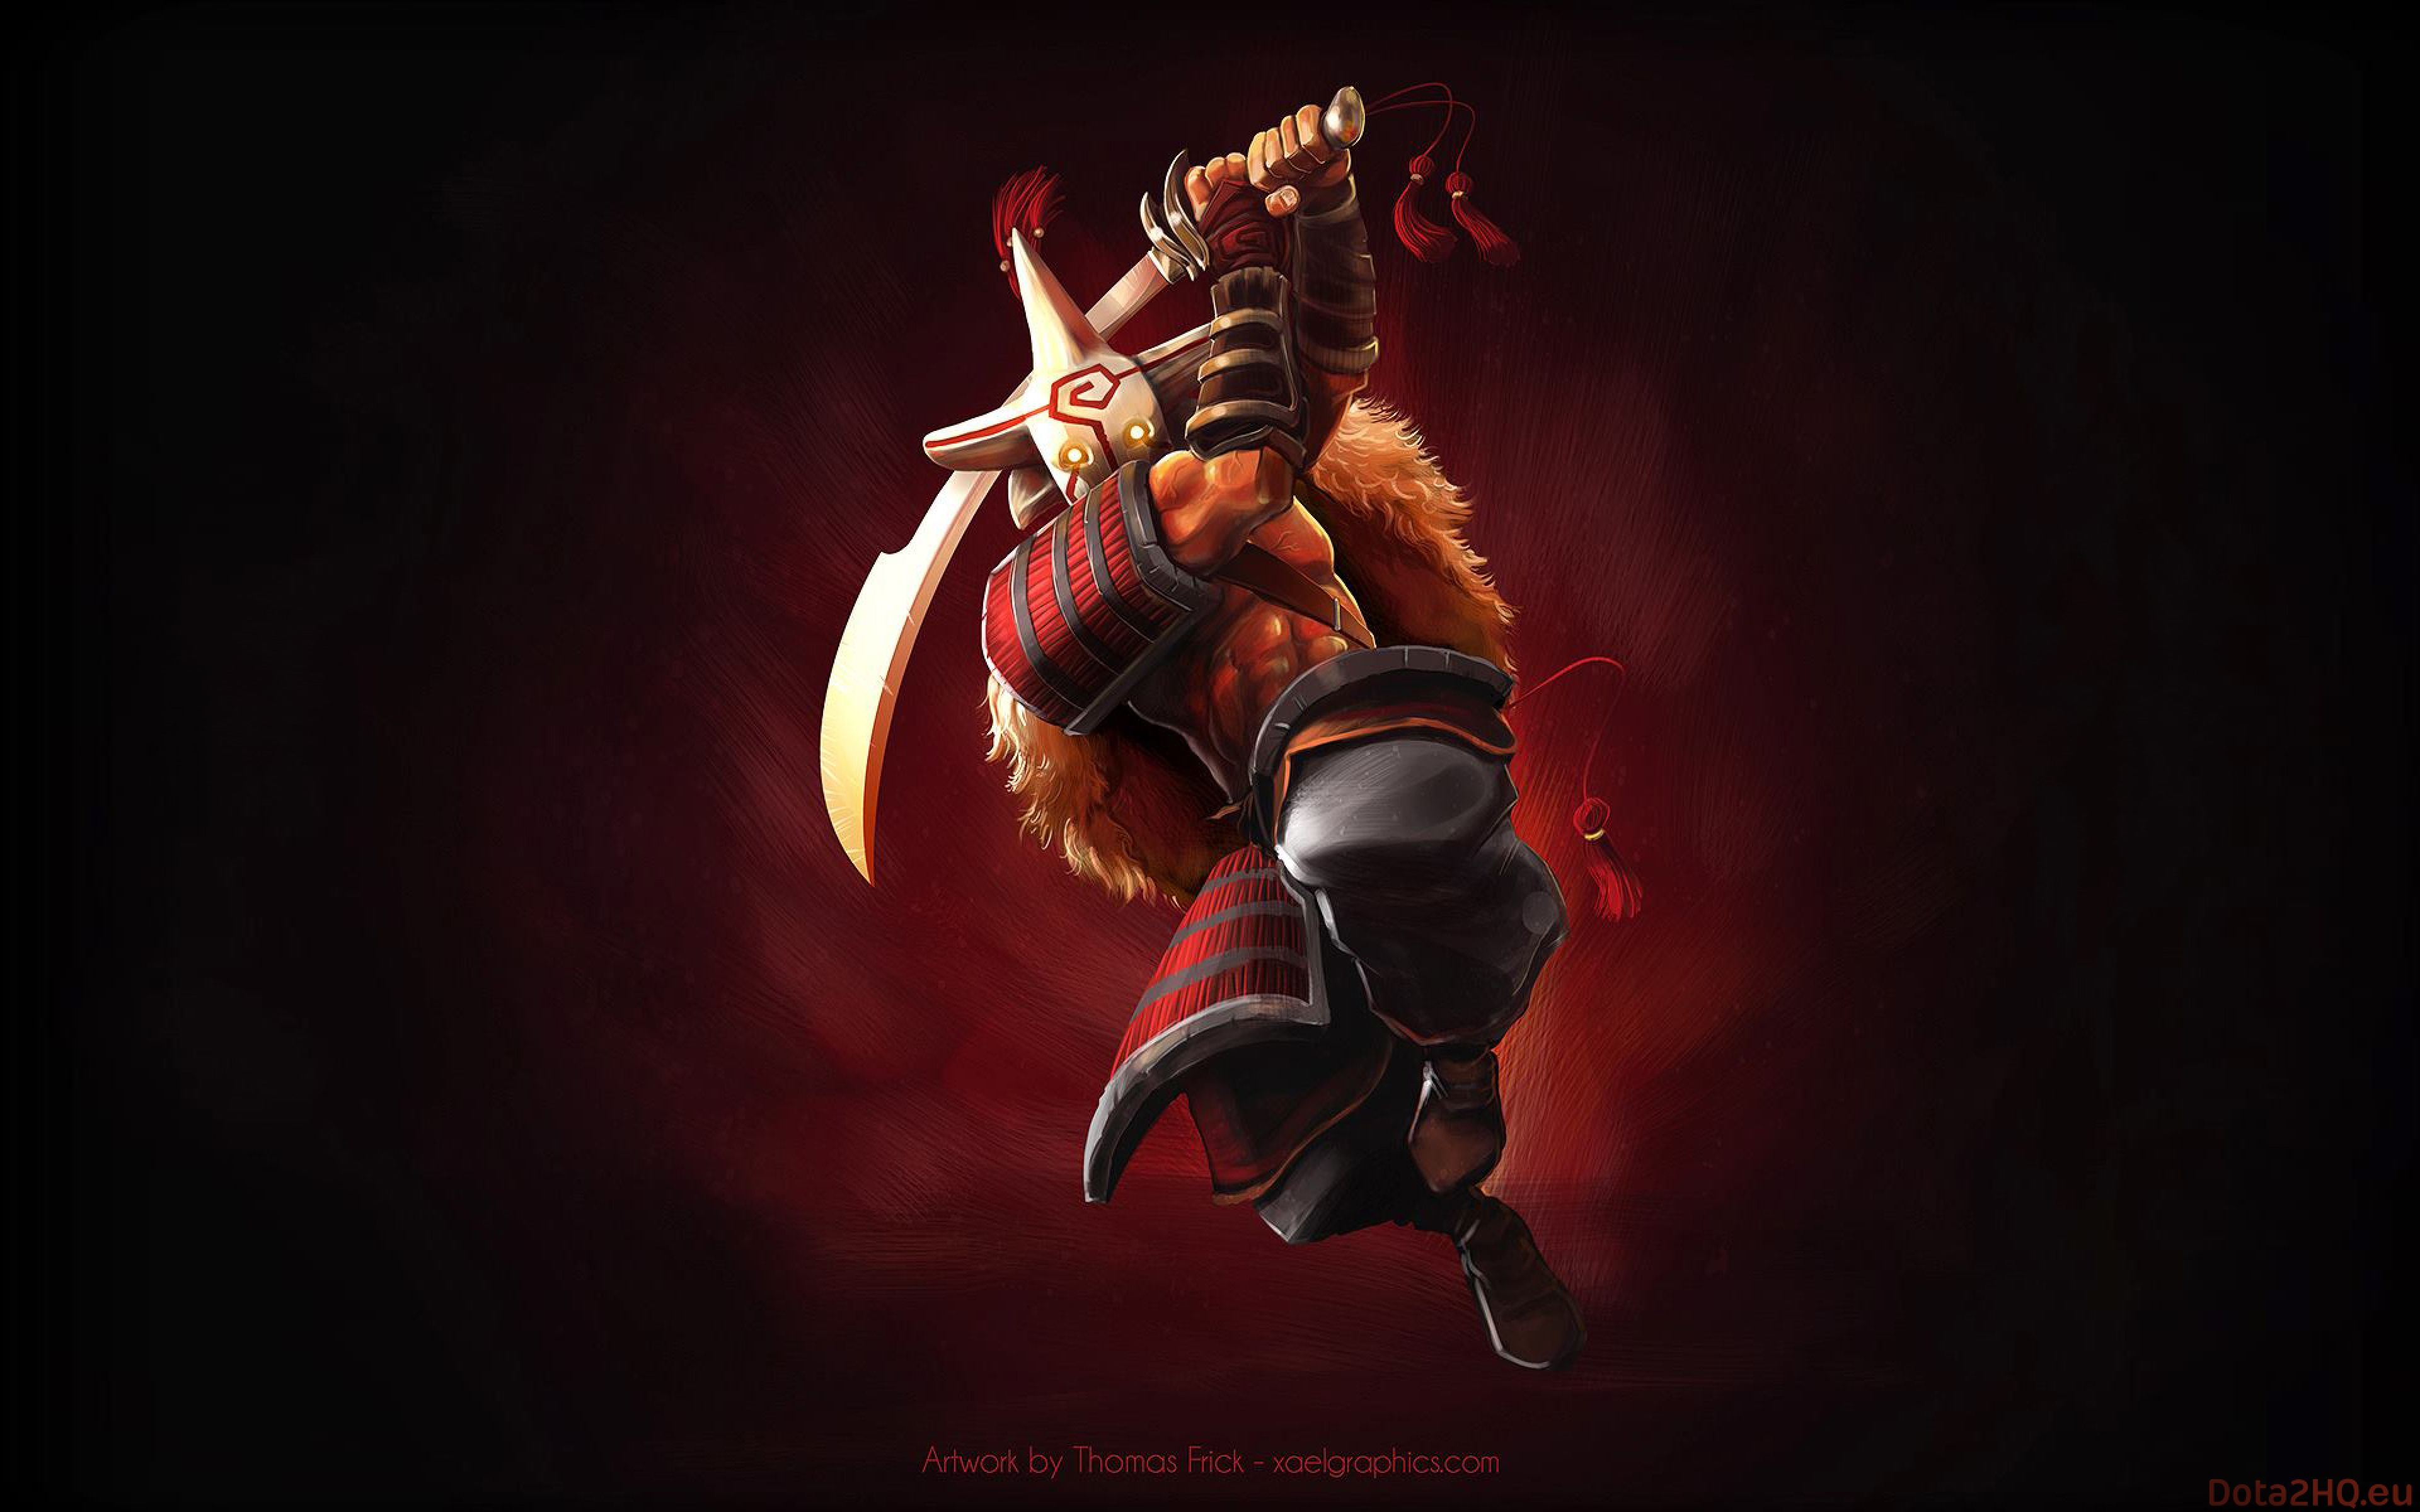 Dota 2 Axe Picture Image Free Download Pc Games Dota Dota